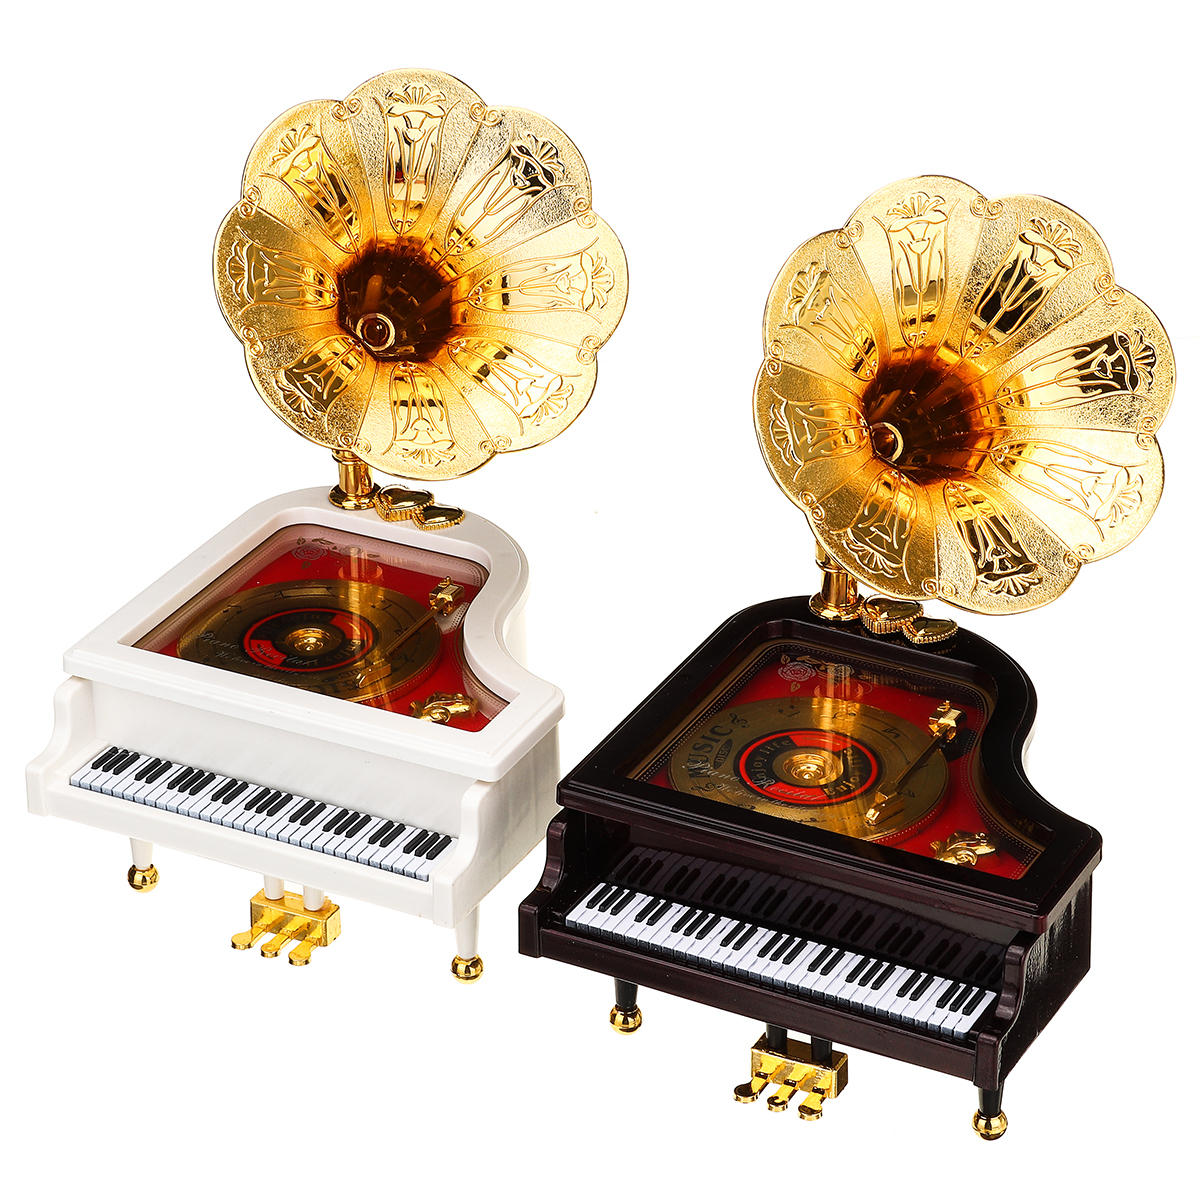 Vintage Retro Piano Phonograph Gold Trumpet Horn Music Box Home Decorations, Banggood  - buy with discount